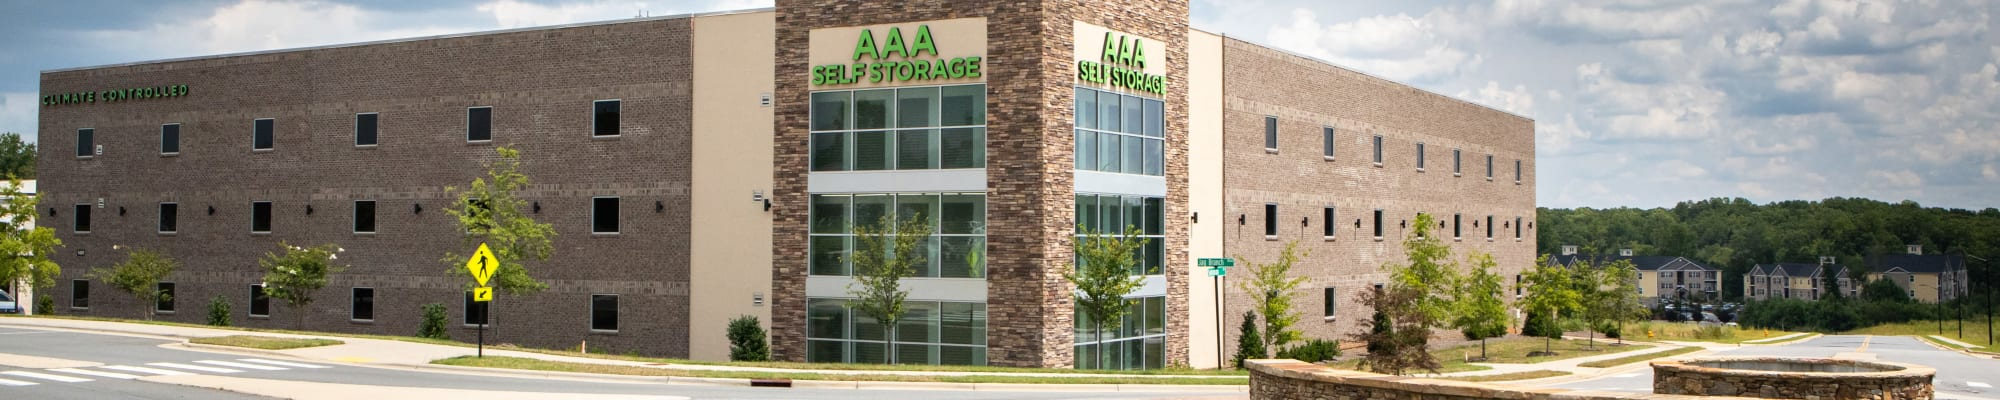 Free truck rental at AAA Self Storage at Jag Branch Blvd in Kernersville, NC